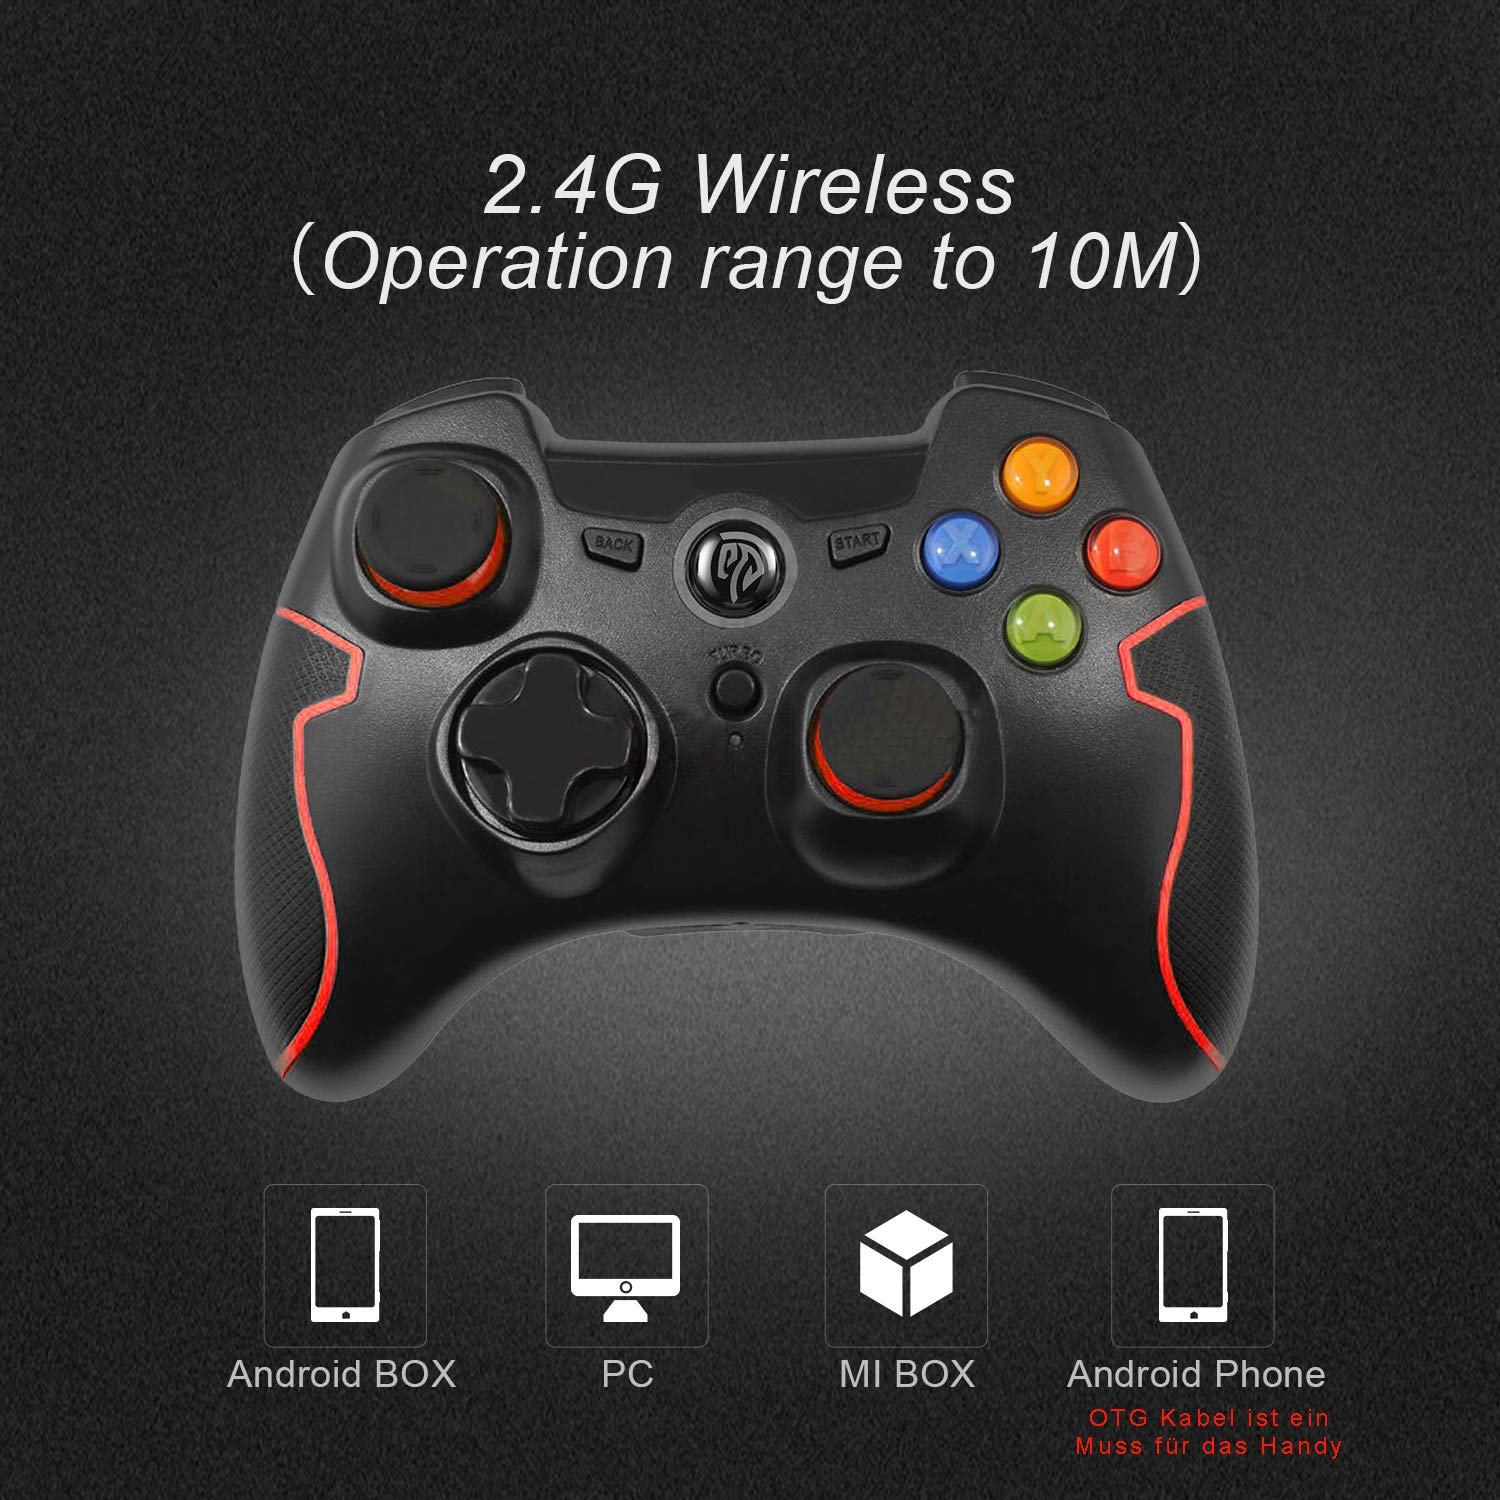 EG-C3071W 2.4G Wireless Gaming Joystick Dual Shock EasySMX Wireless Game Controller TURBO for Android Phone or Tablet with OTG Function /& PS3//PC//TV or TV Box Black 2019 Edition